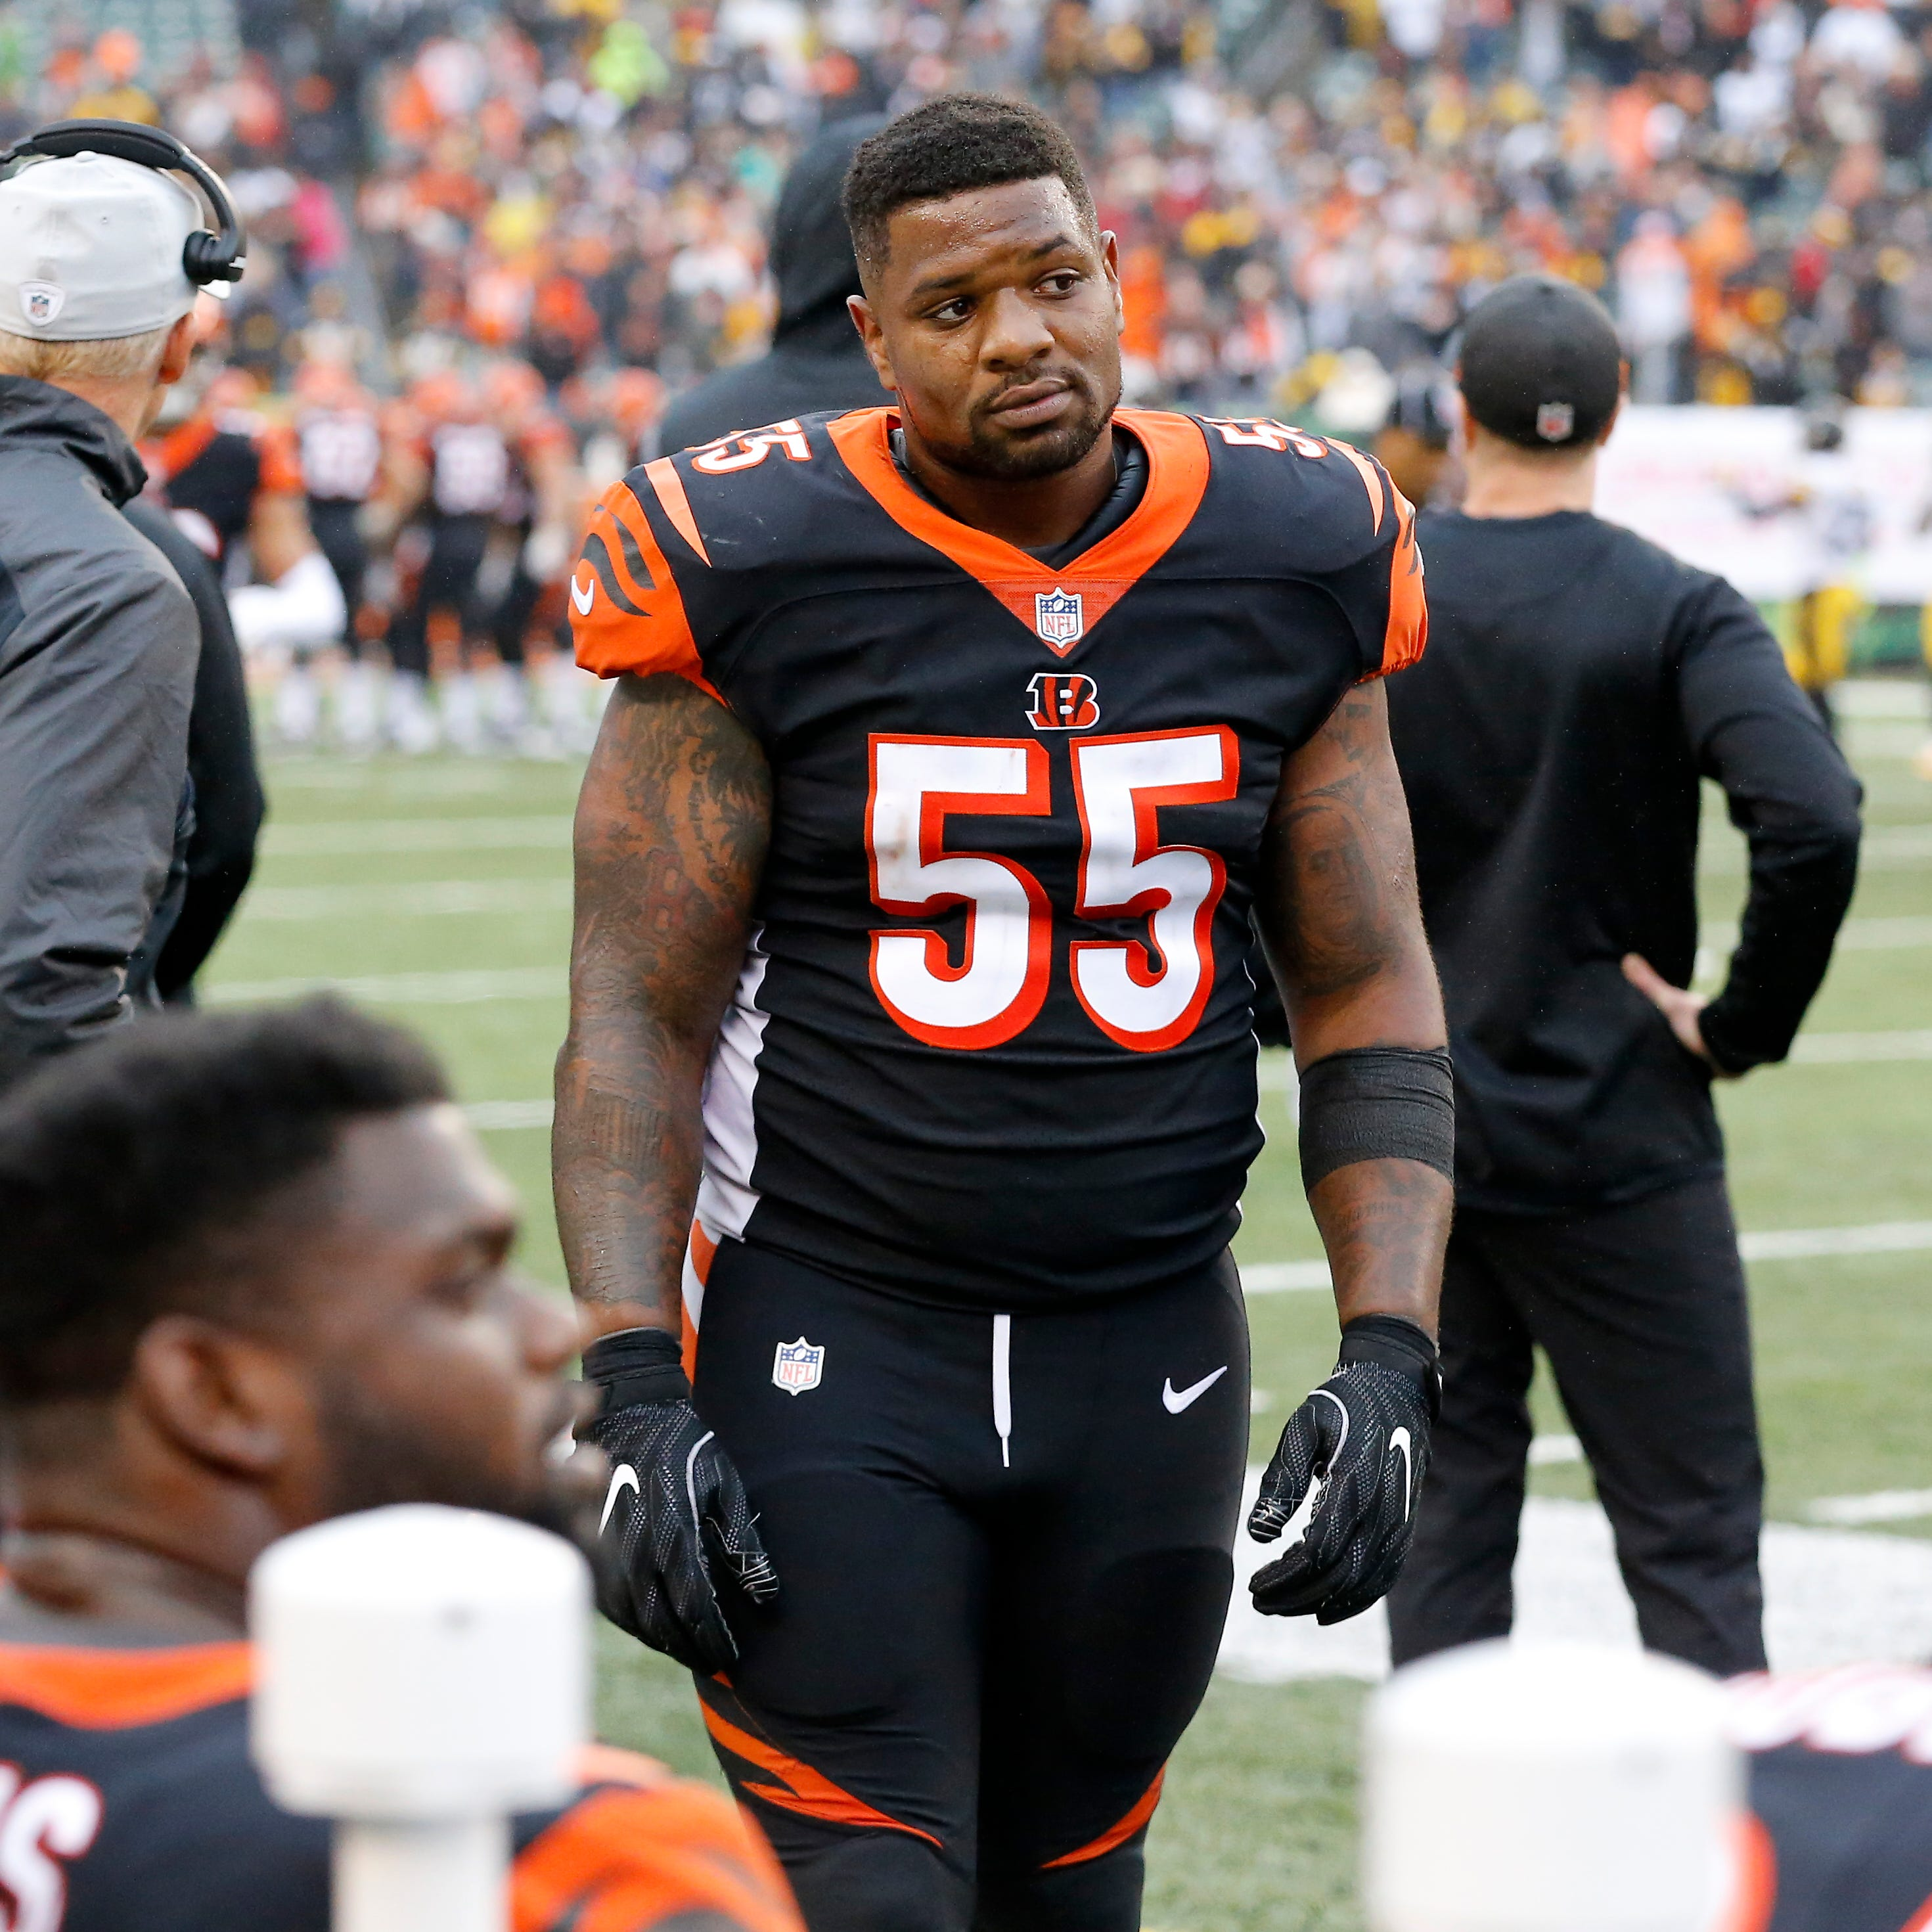 Report: No suspension expected for Cincinnati Bengals' Vontaze Burfict